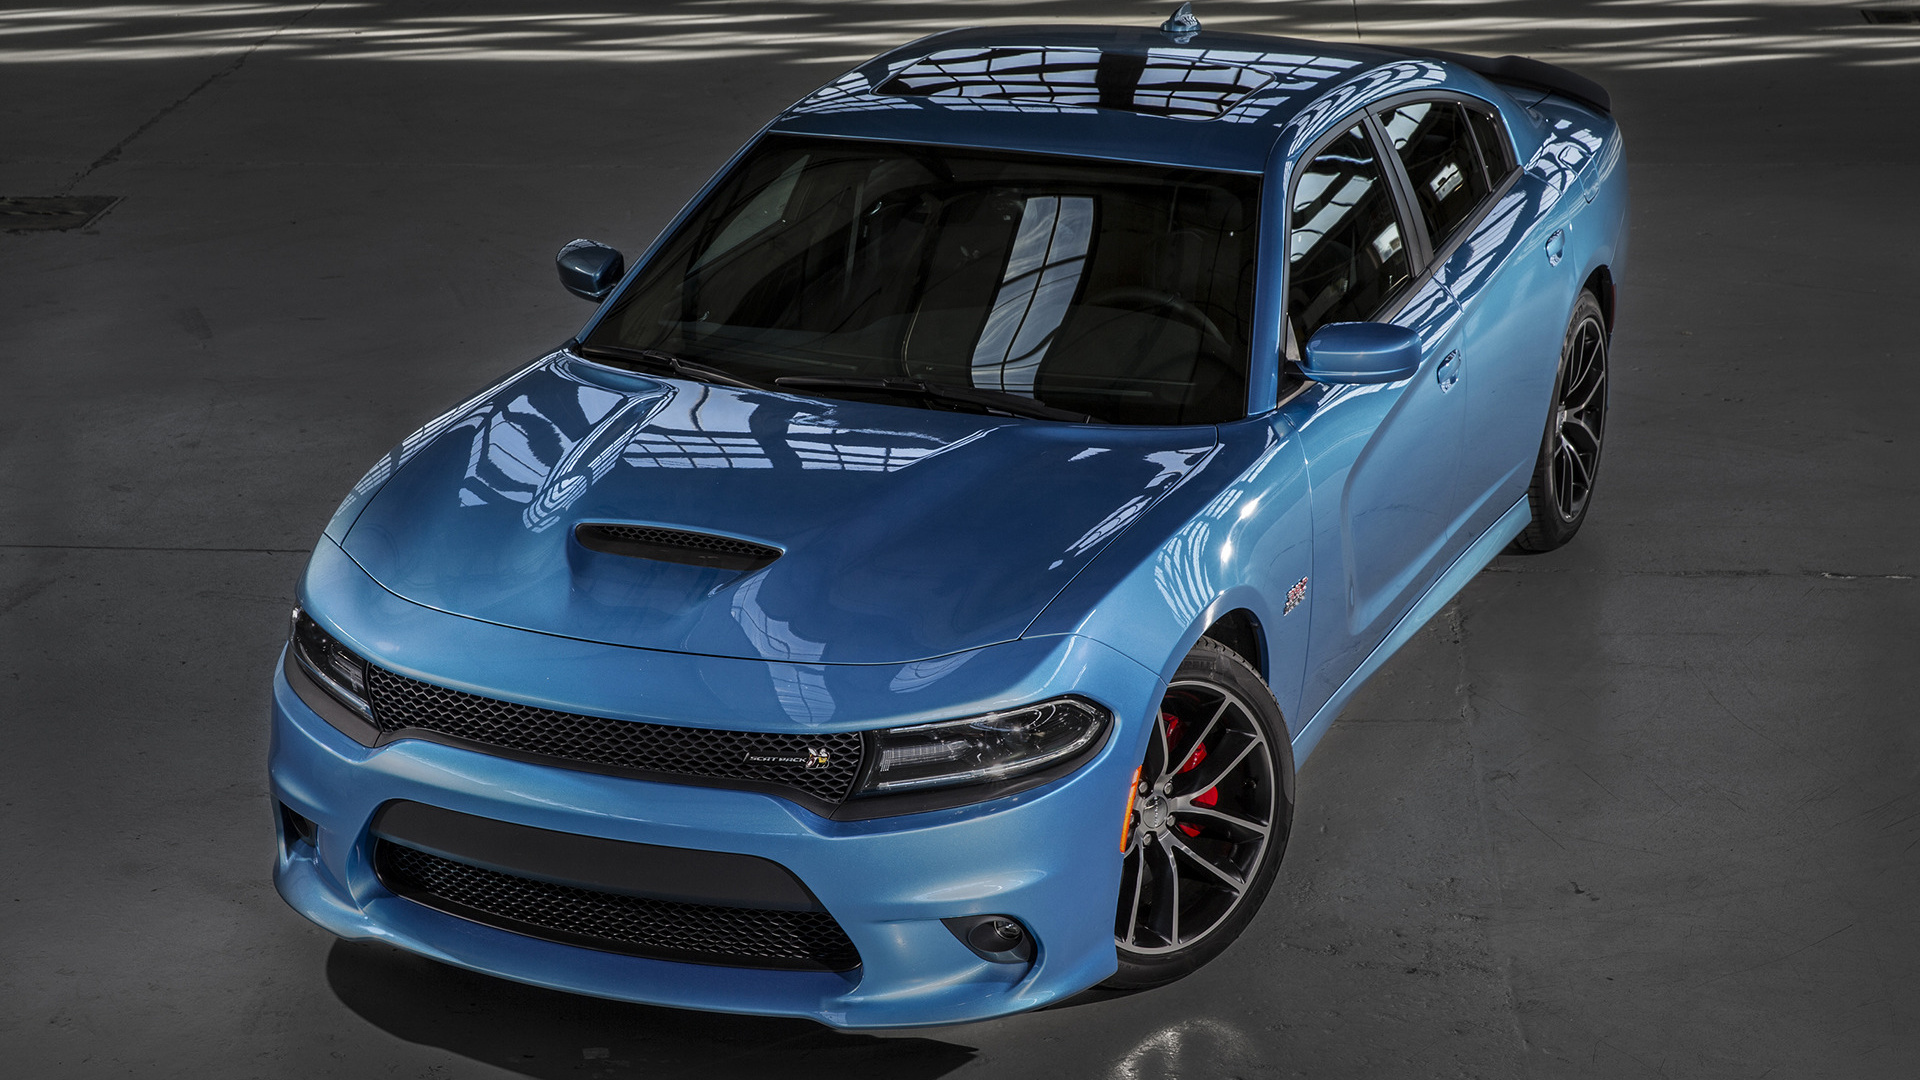 2015 Dodge Charger R T Scat Pack Wallpapers And Hd